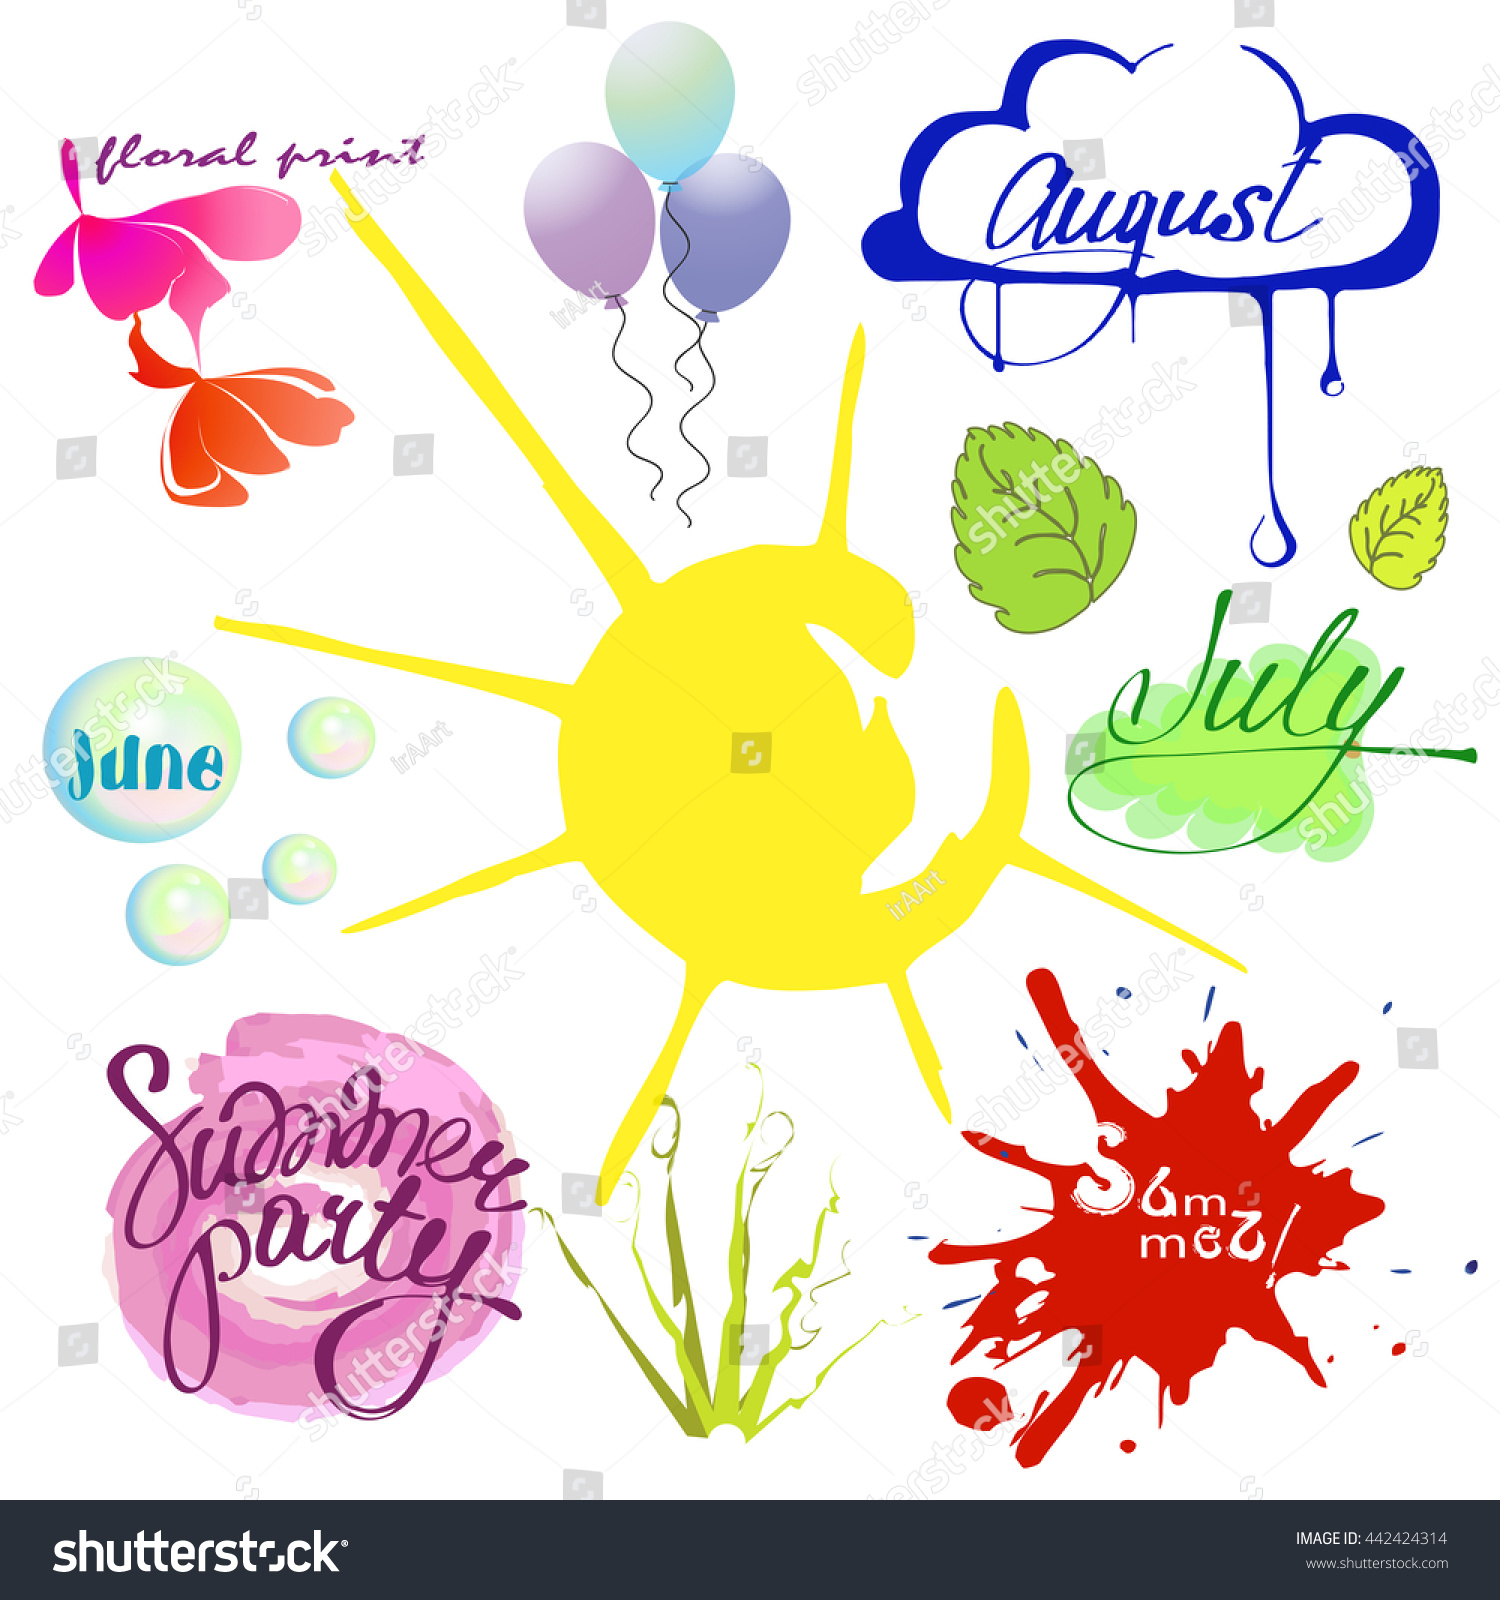 Set summer time june july august stock vector 442424314 shutterstock june july and august design elements for summer design themes buycottarizona Image collections